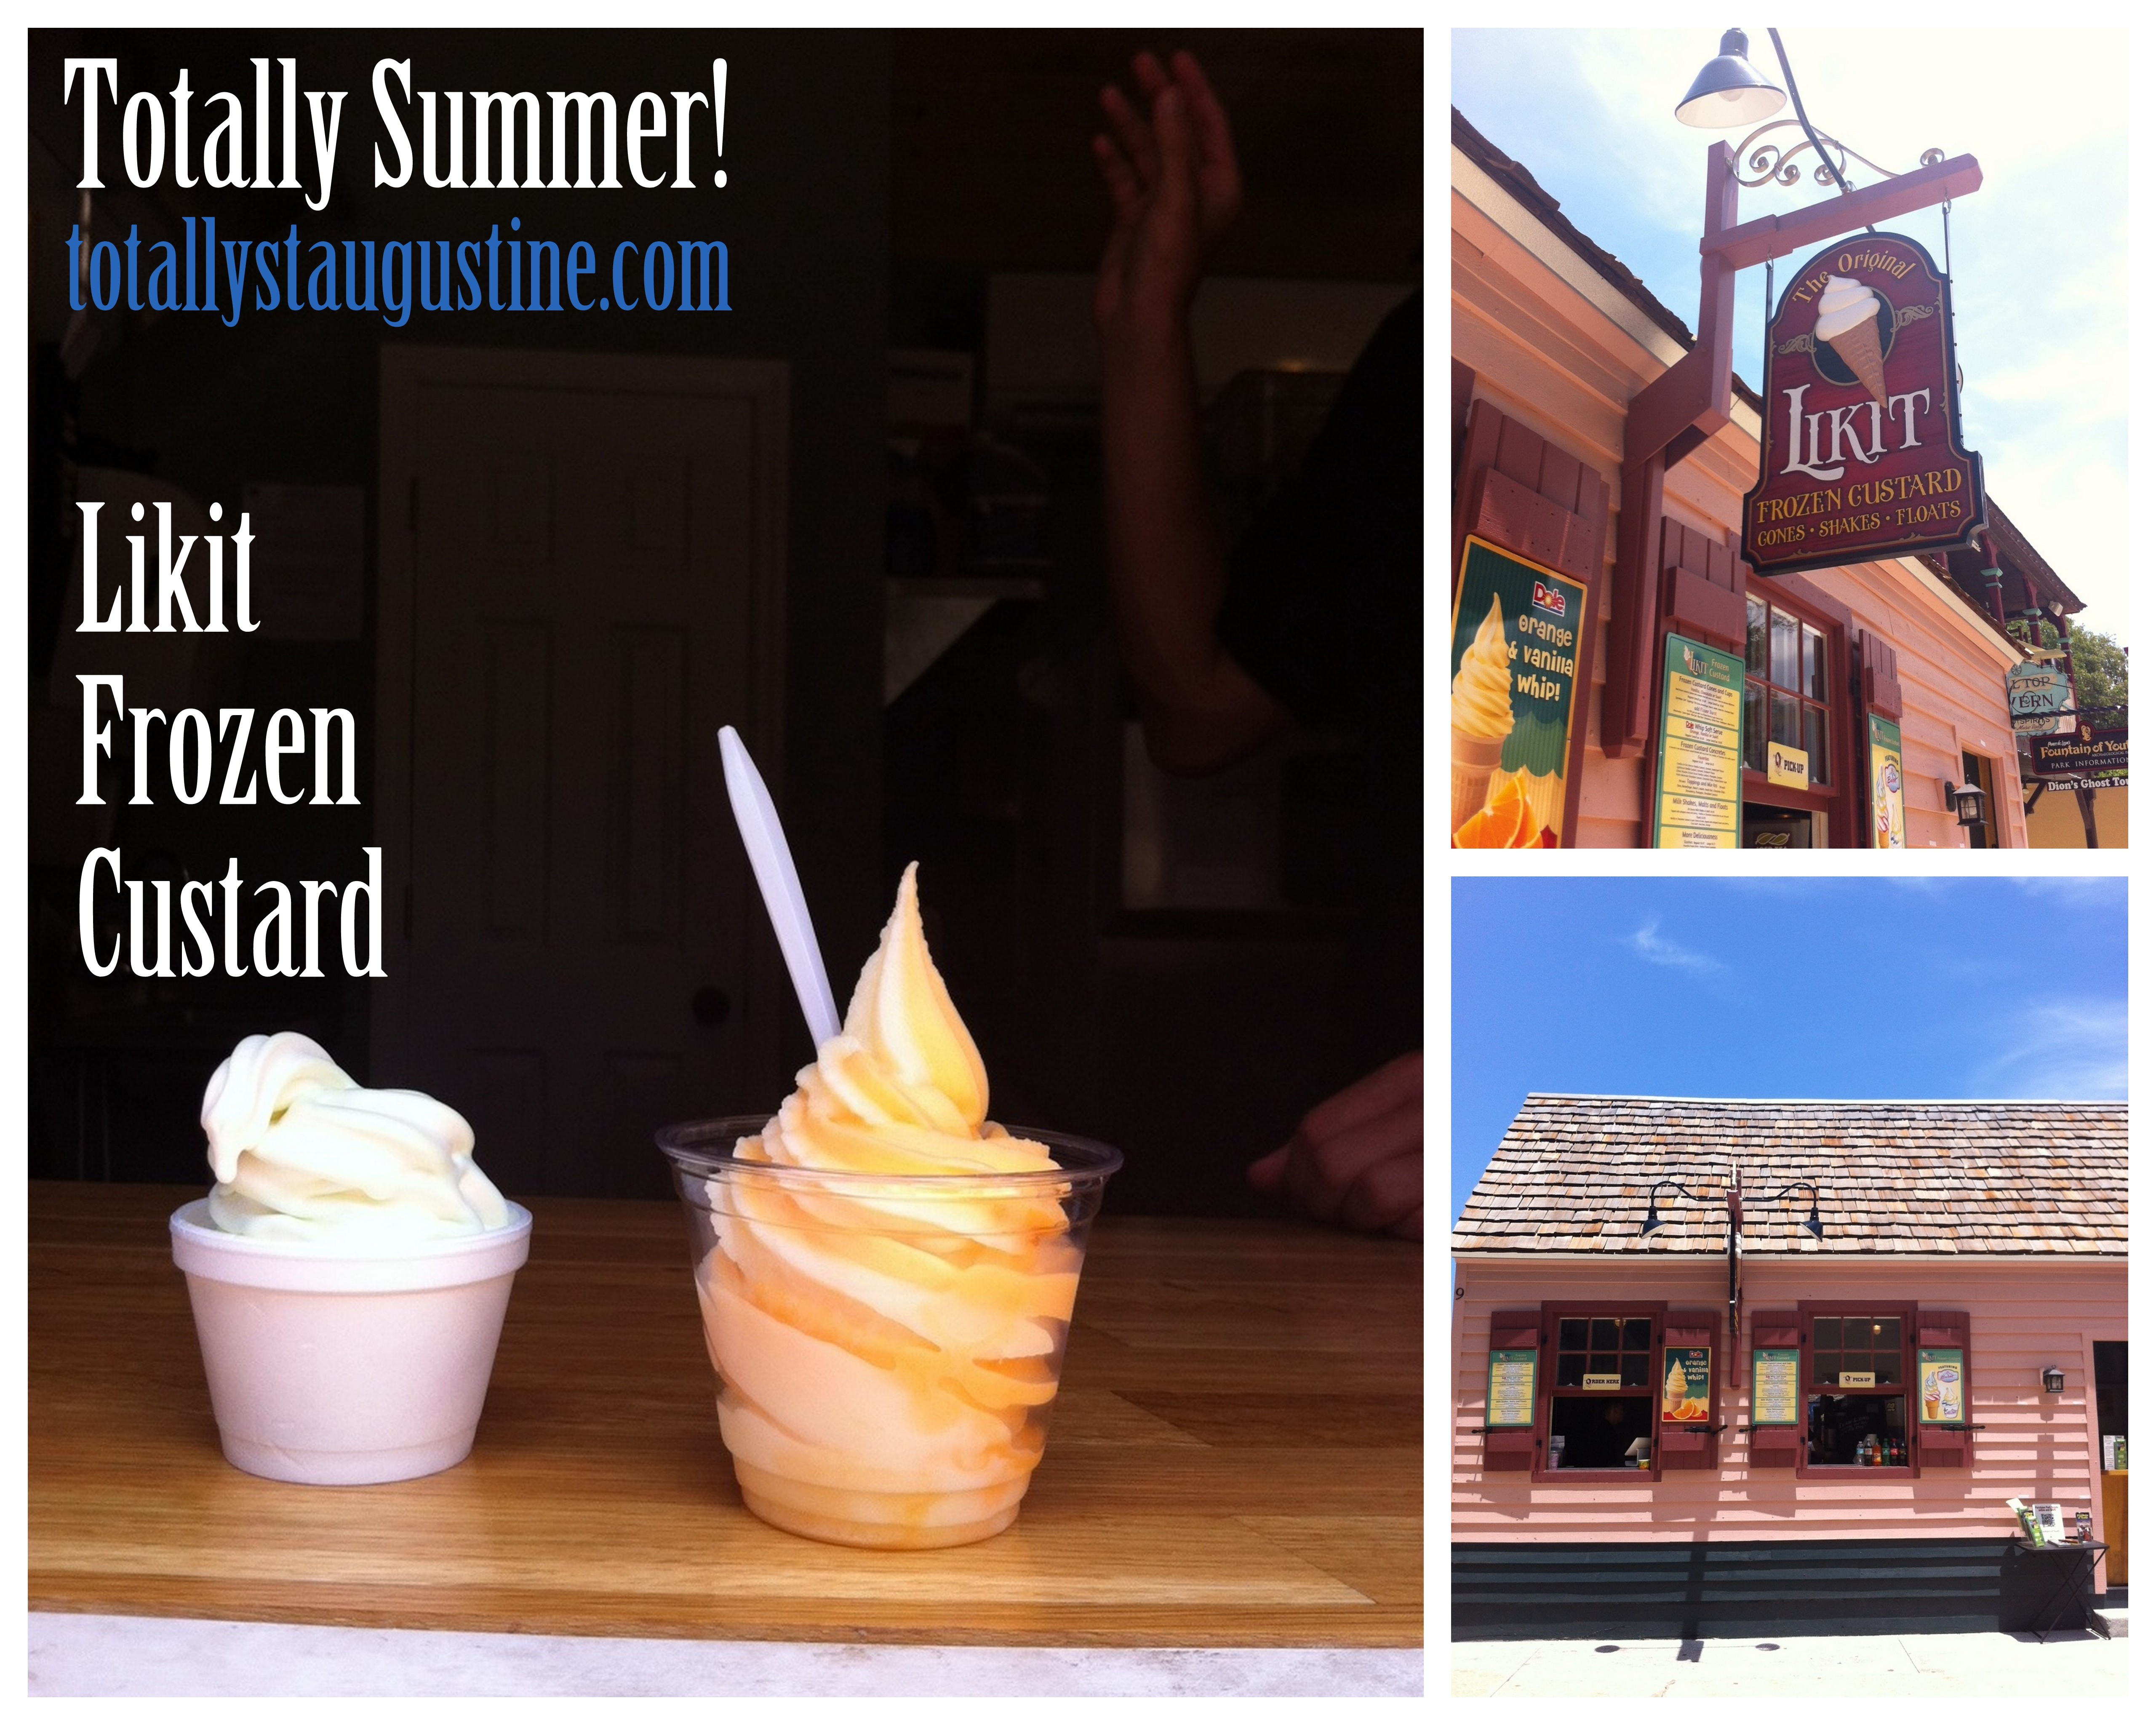 Likit Frozen Custard in downtown St. Augustine offers cold summer treats.